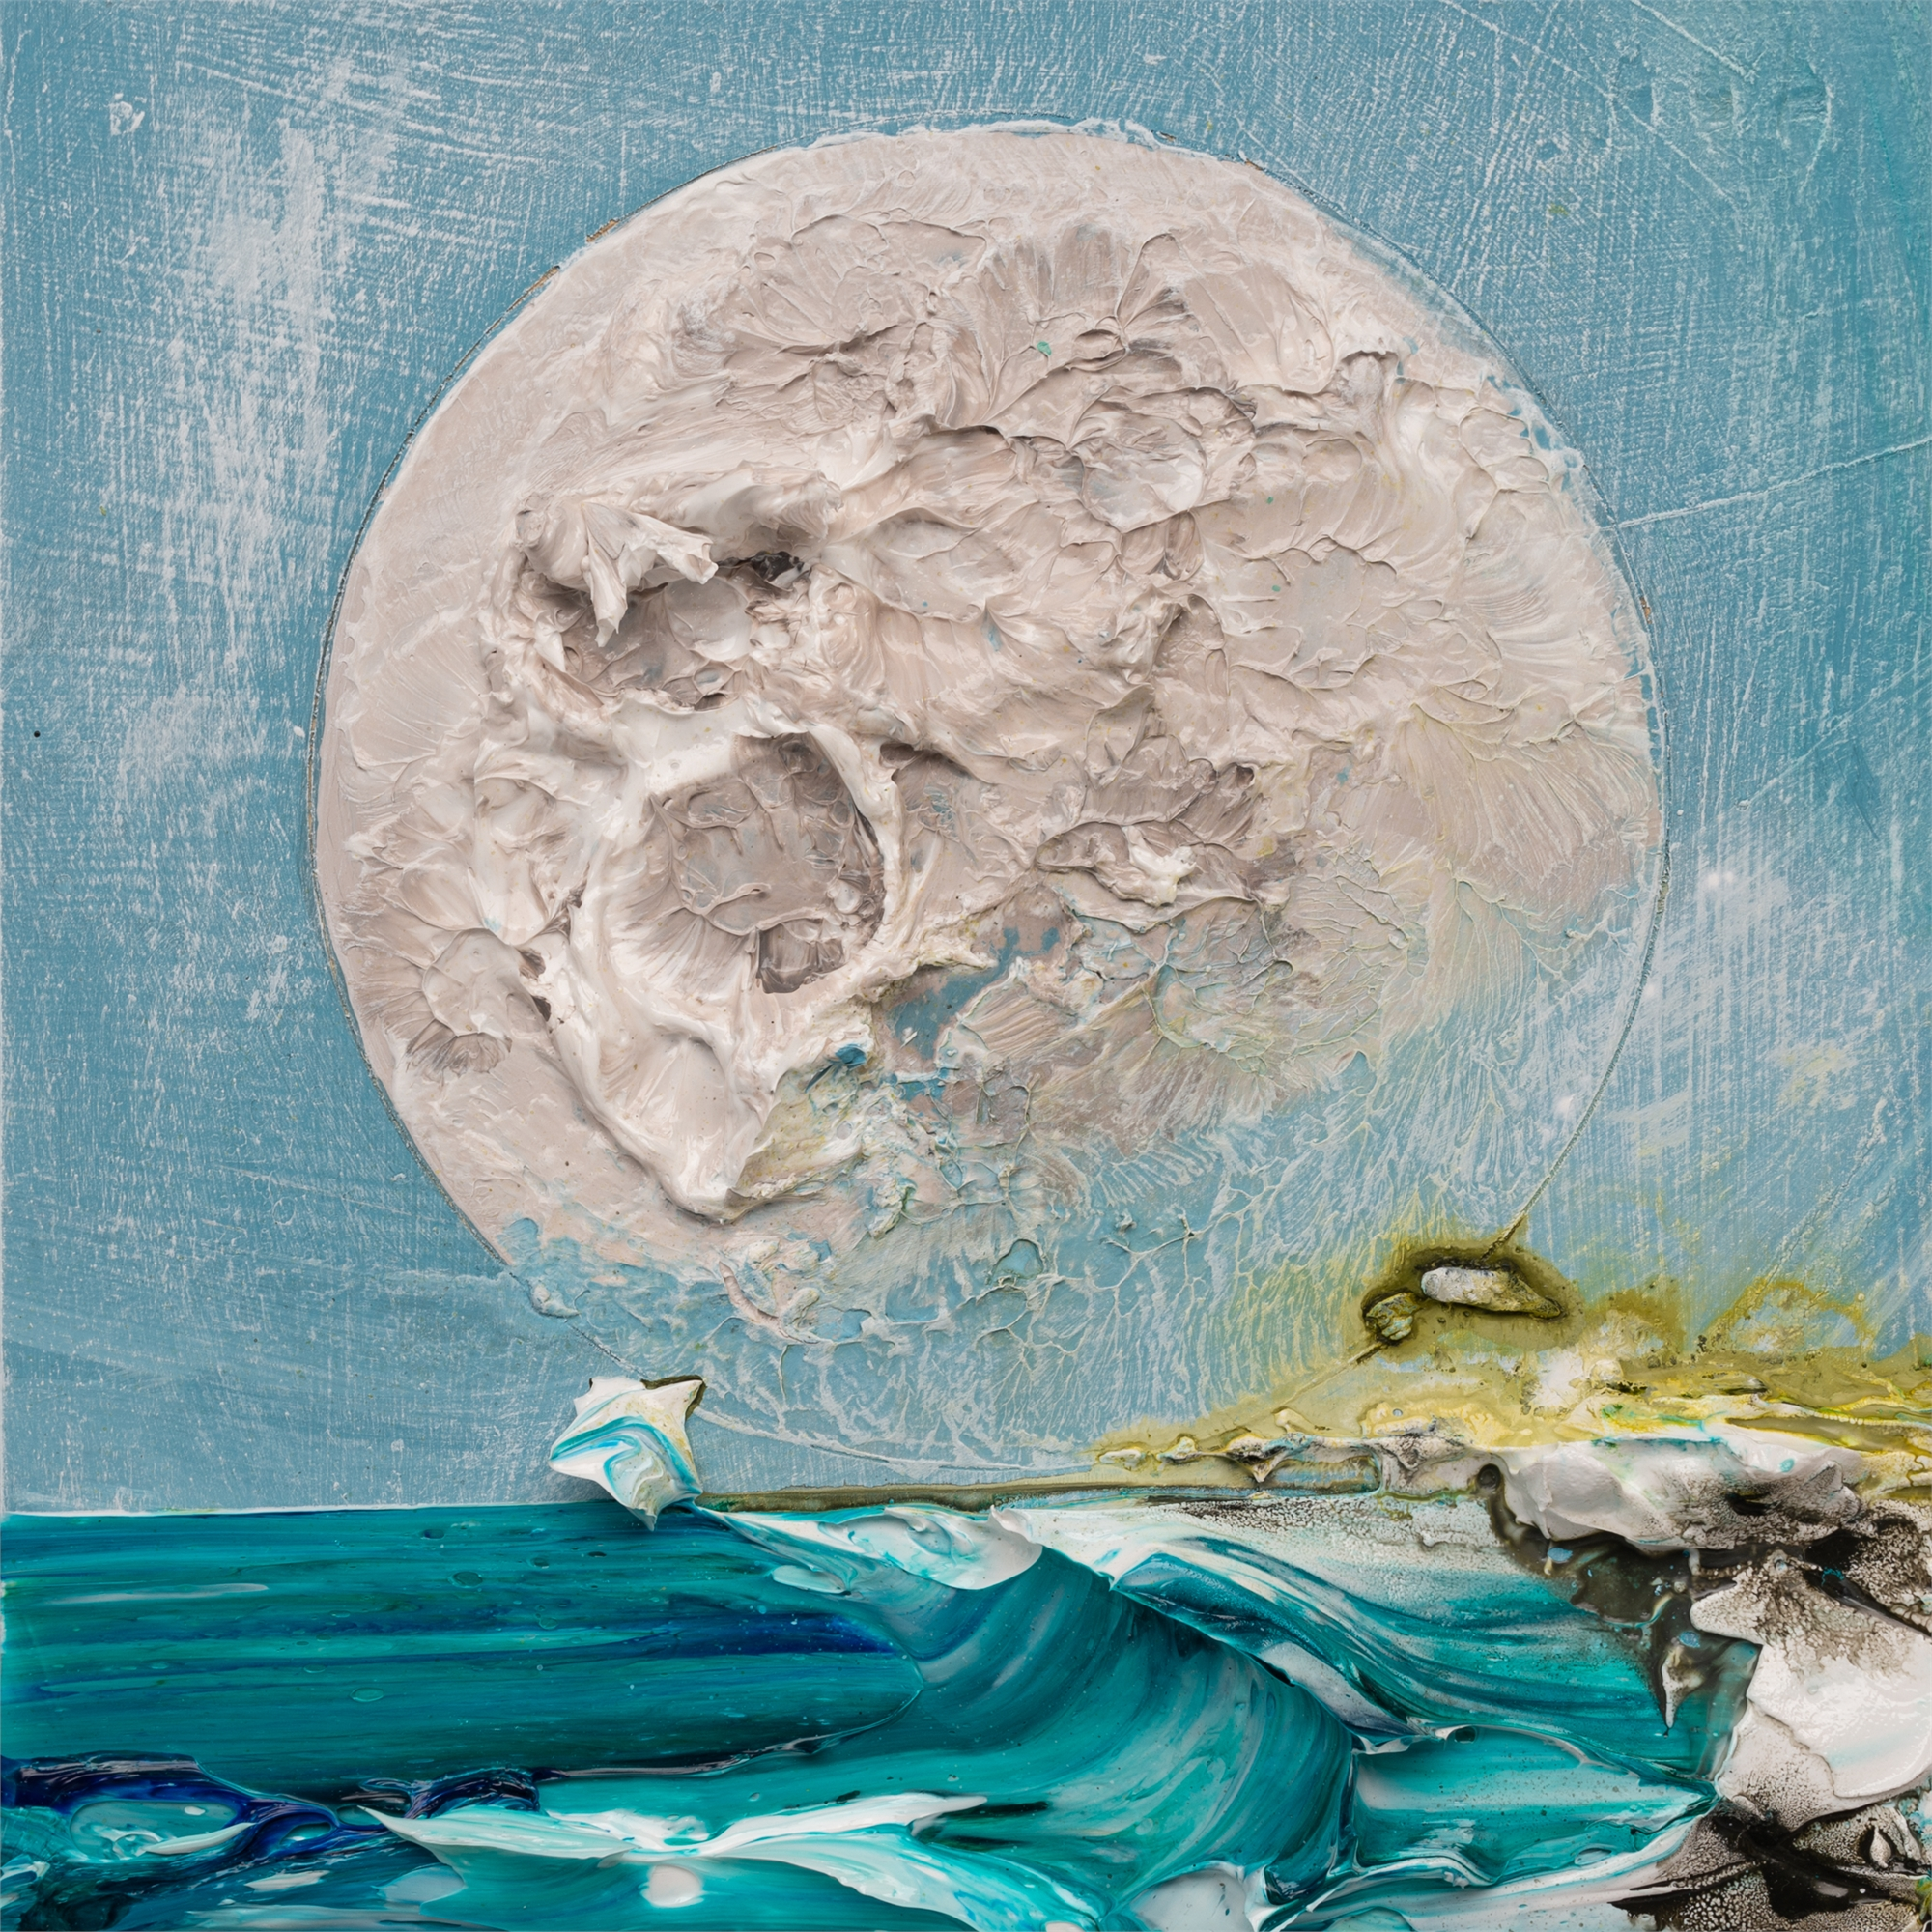 (SOLD) MOONSCAPE MS-12X12-2019-329 by JUSTIN GAFFREY